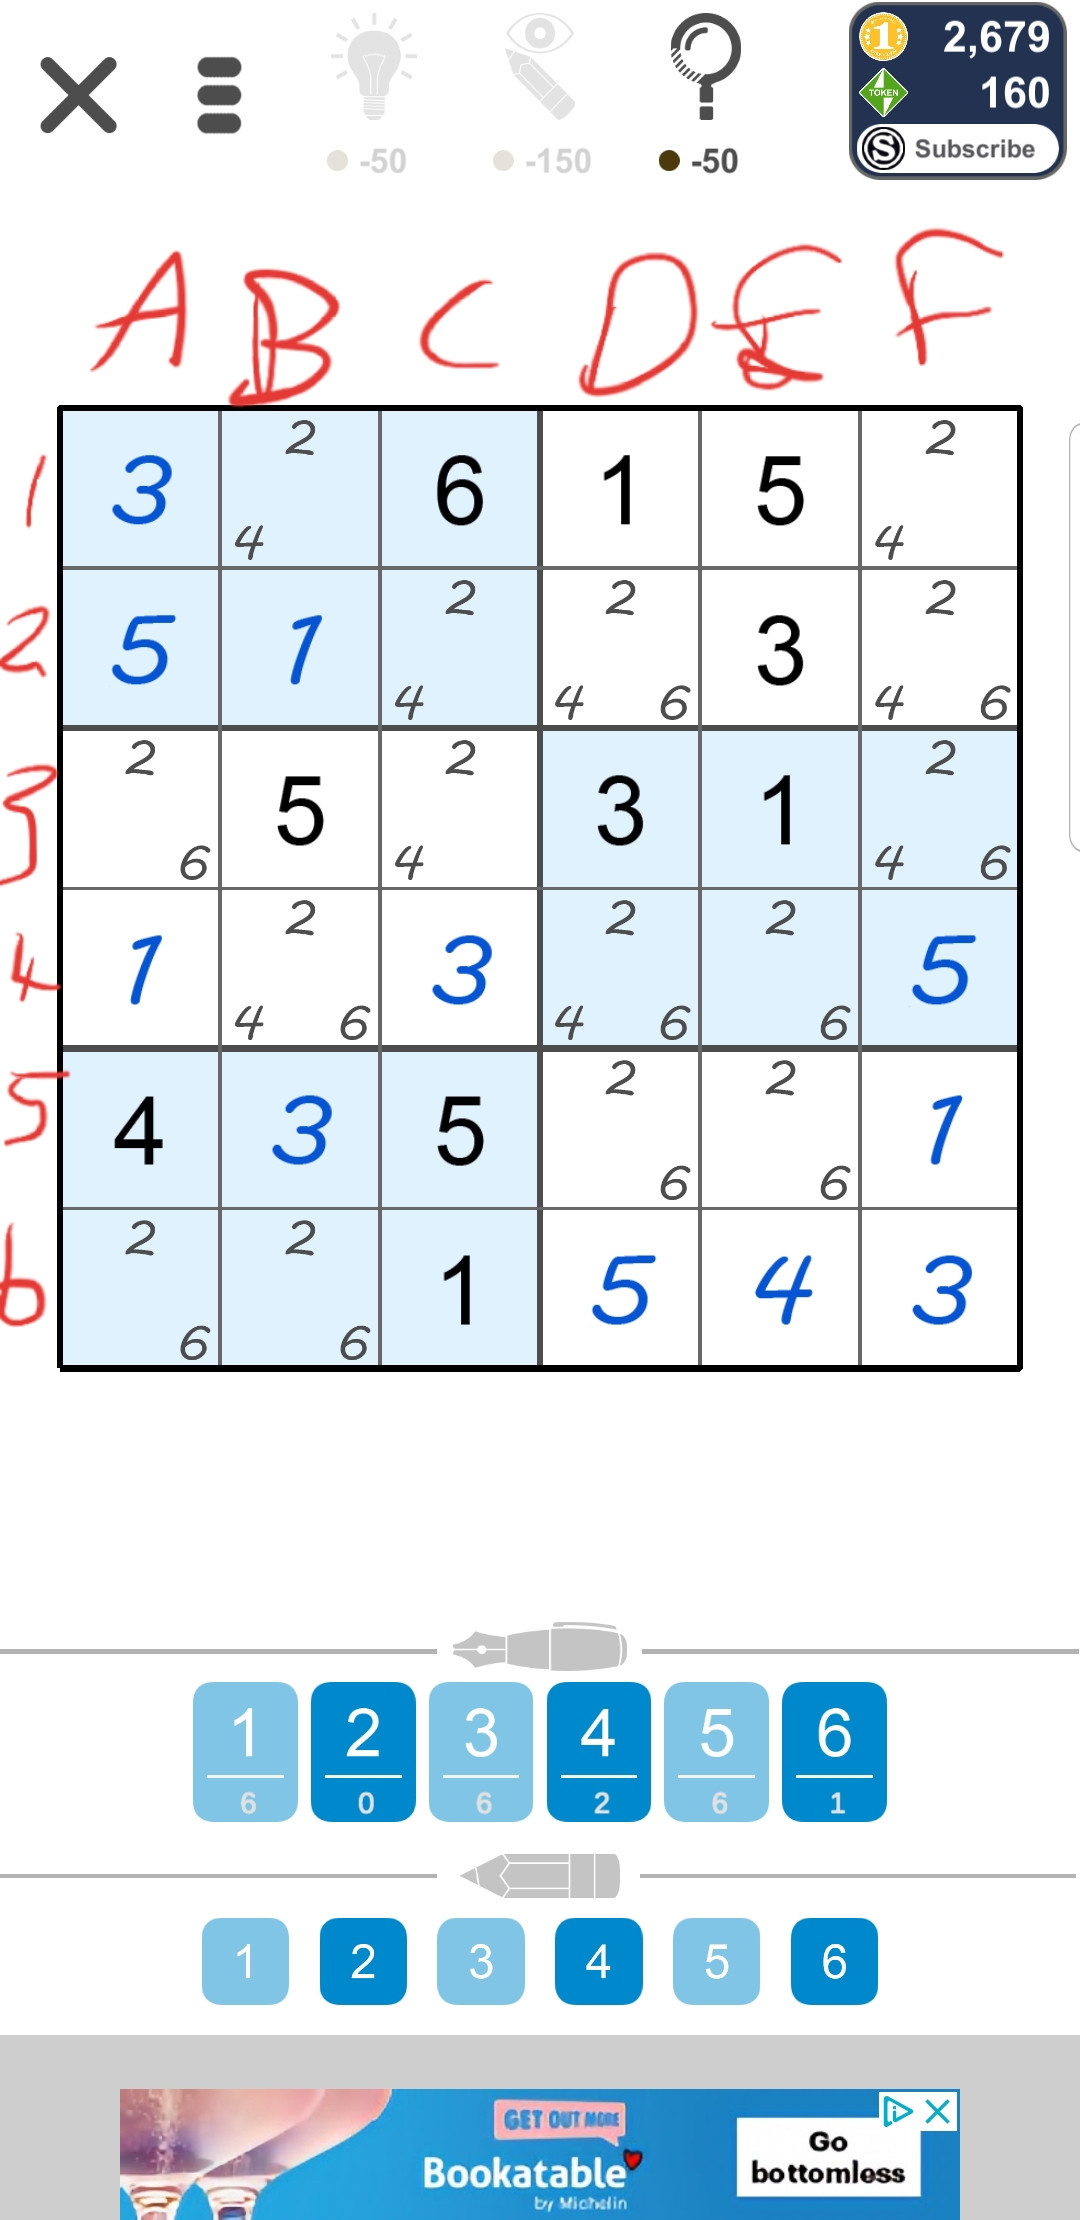 What Is The Best Way To Solve This 6X6 Sudoku? - Puzzling